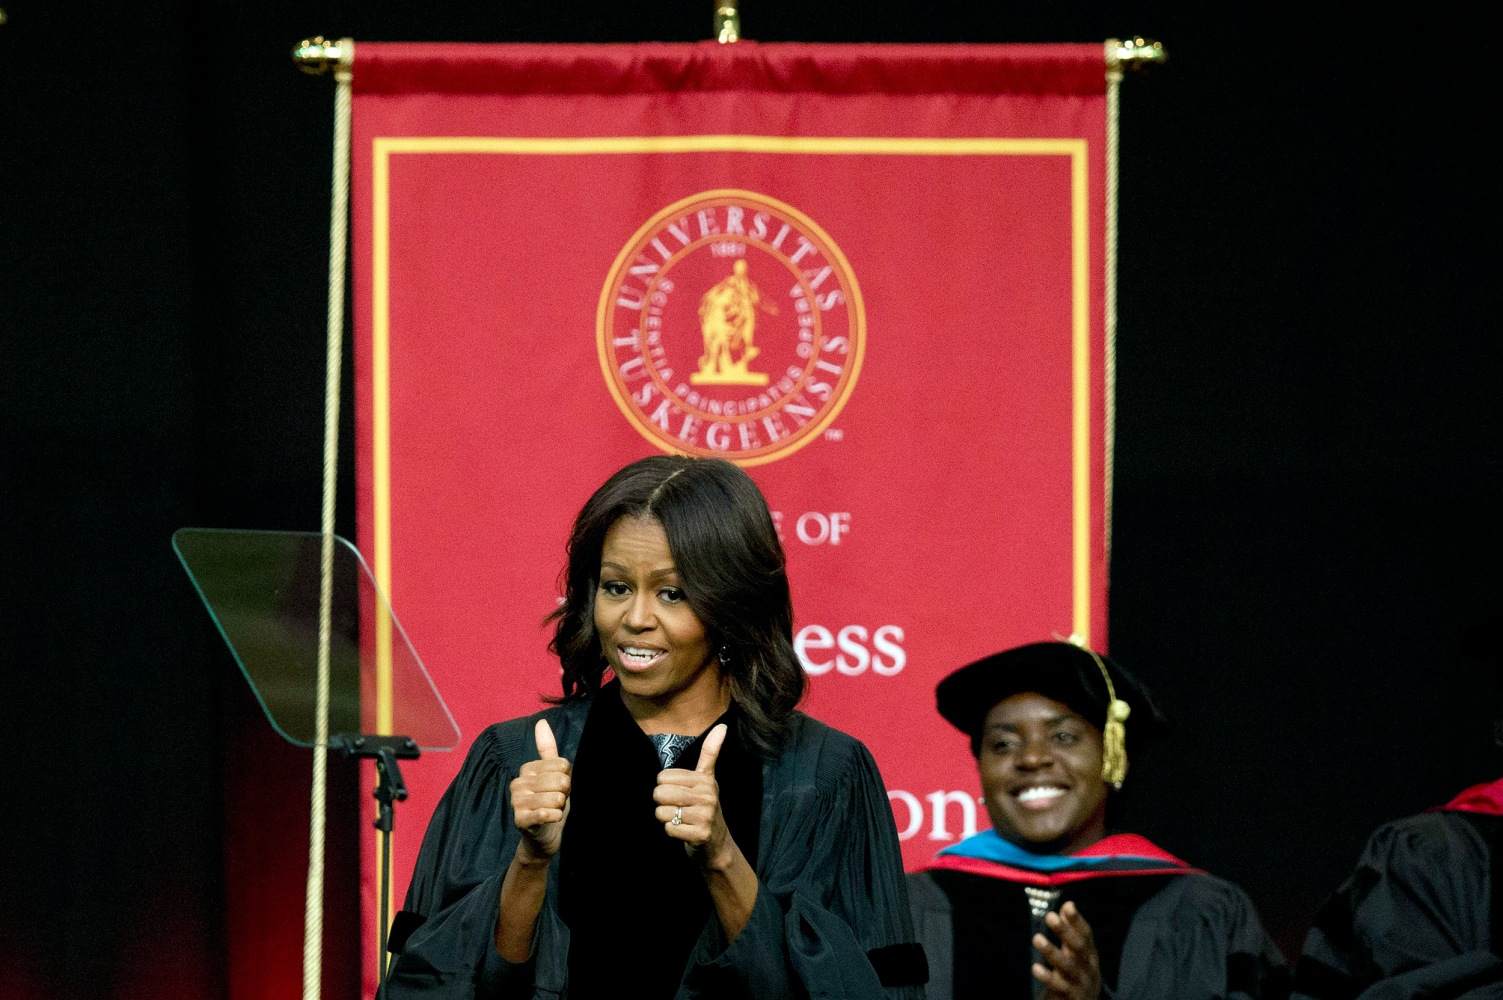 Michelle obamas thesis